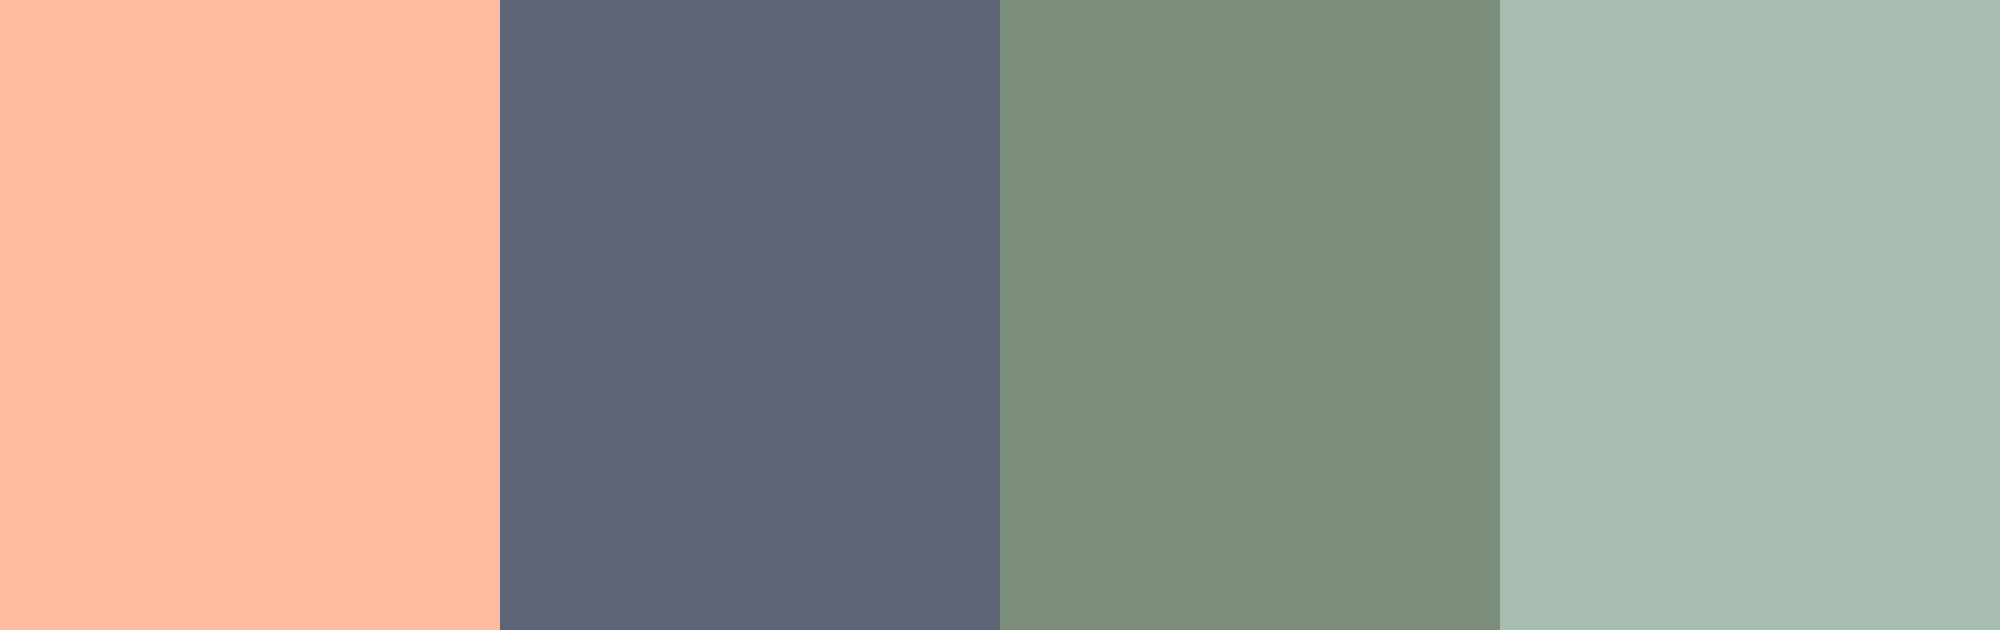 The riverside color pallet displayed as a four color graphic.